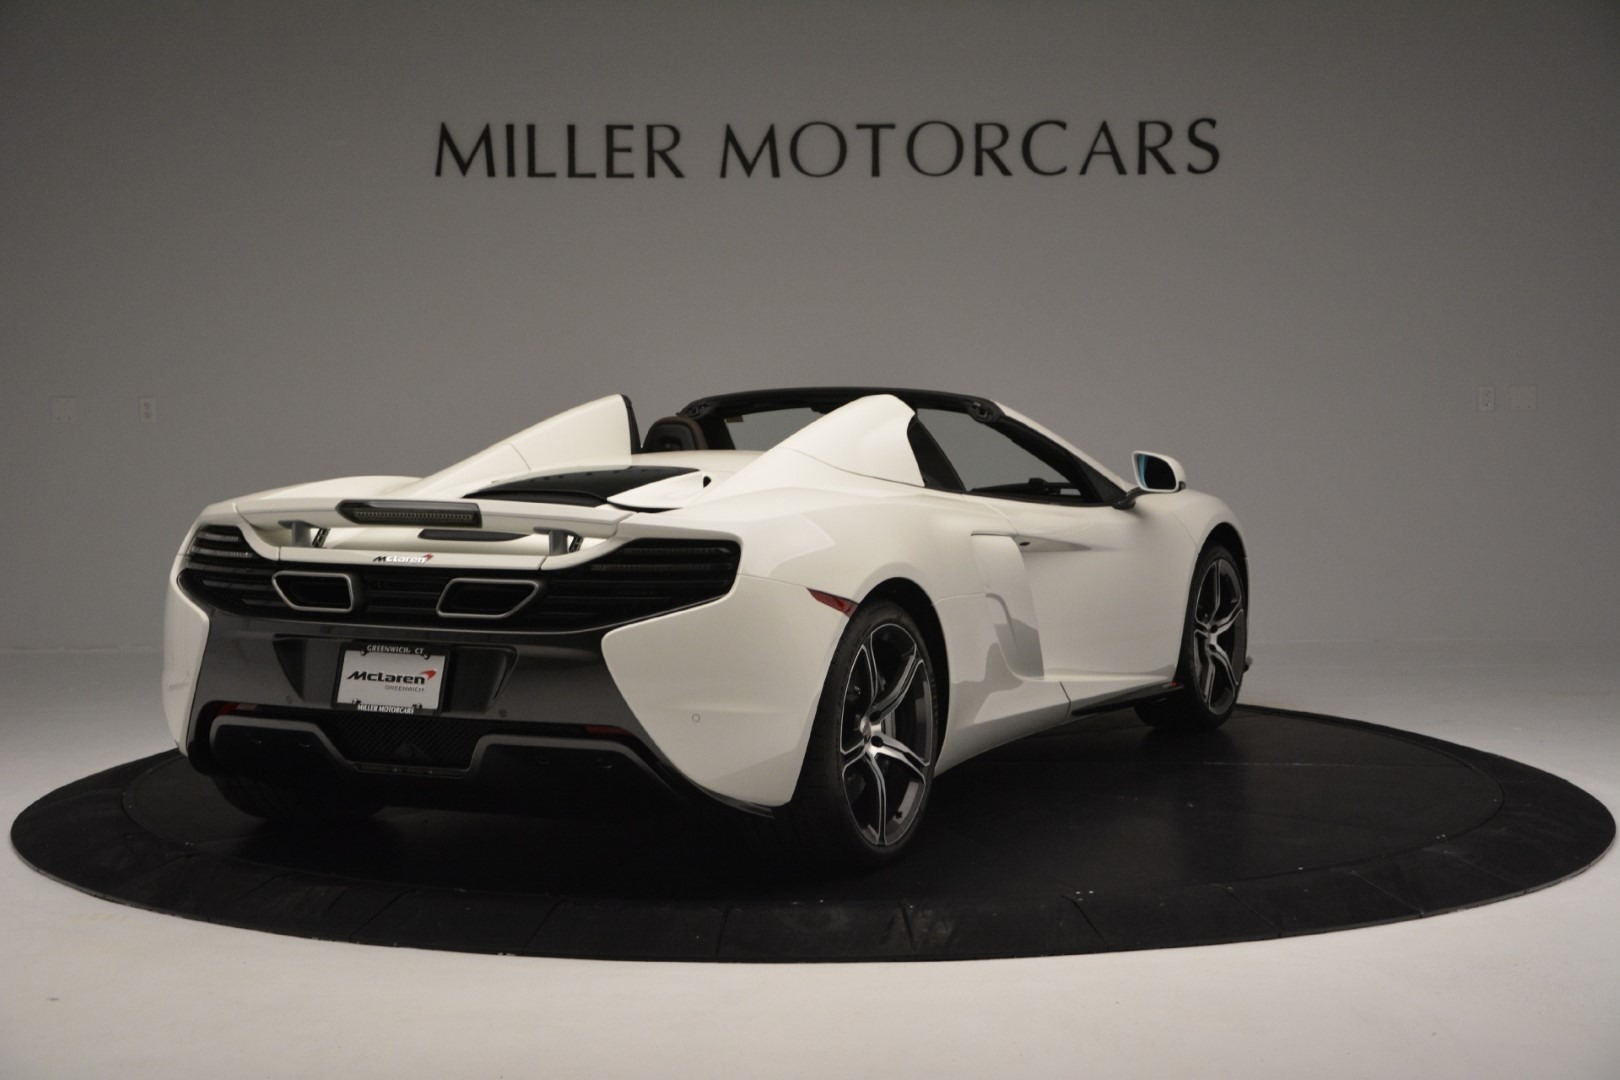 Used 2015 McLaren 650S Spider Convertible For Sale In Greenwich, CT. Alfa Romeo of Greenwich, 3169 3219_p6